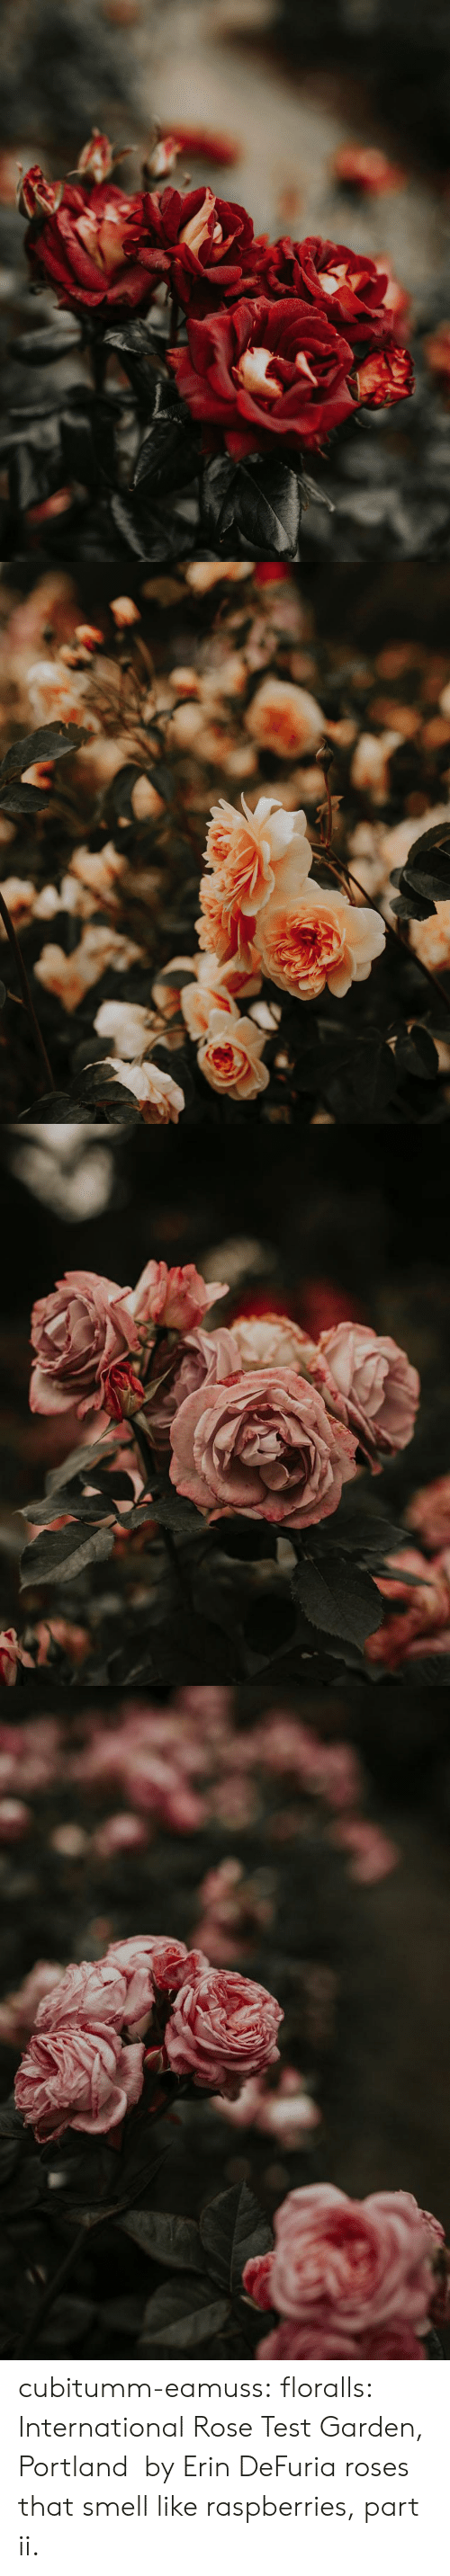 portland: cubitumm-eamuss: floralls:   International Rose Test Garden,  Portland    by  Erin DeFuria   roses that smell like raspberries, part ii.